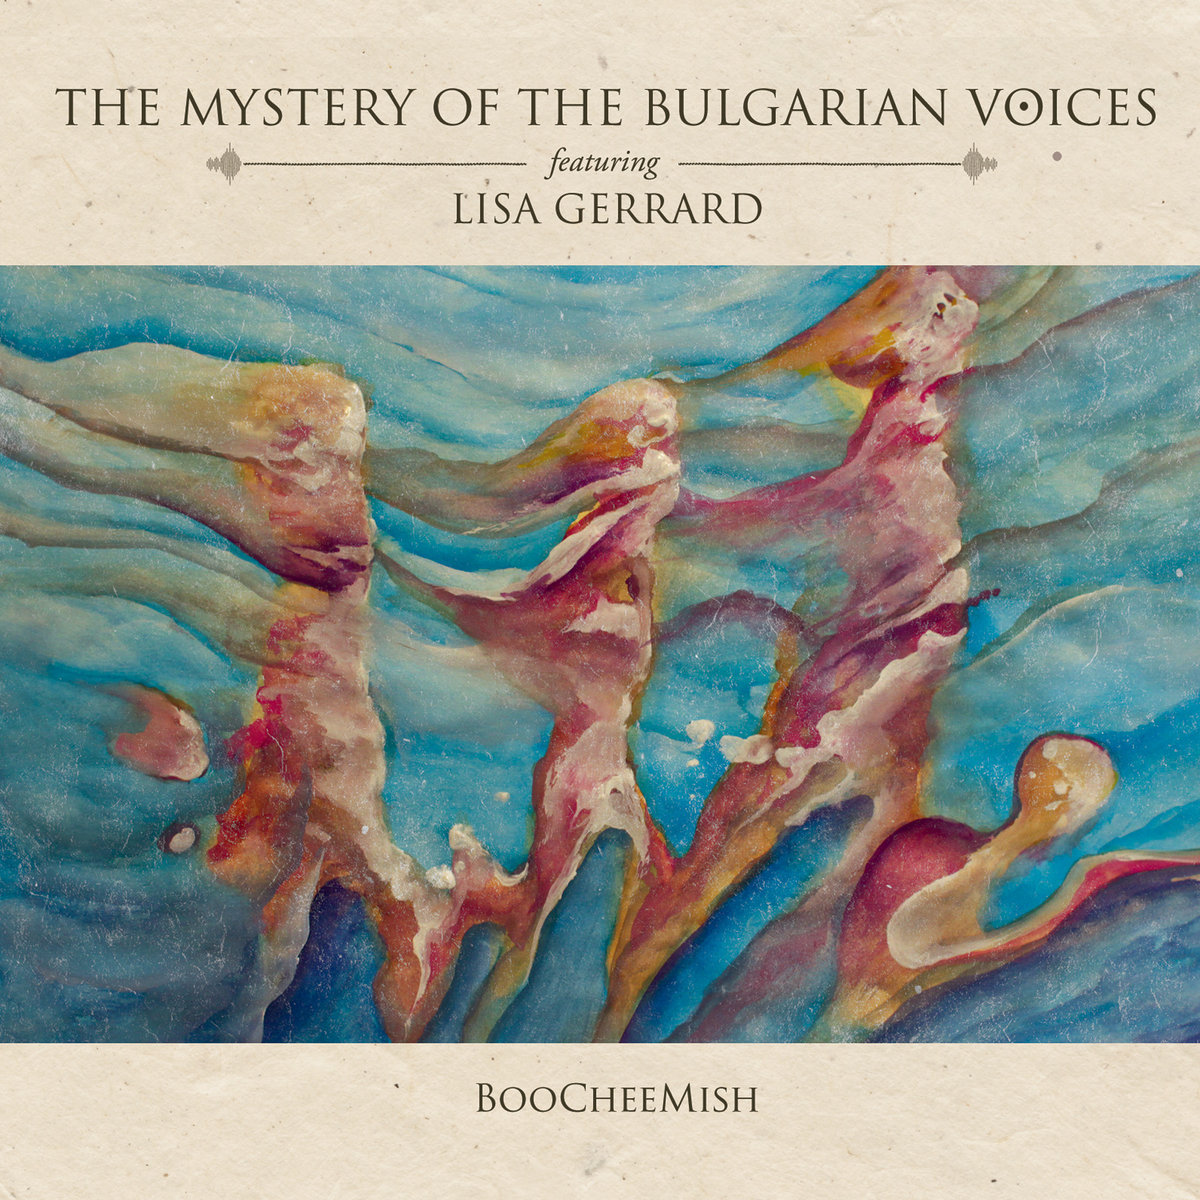 the mystery of the bulgarian voices boocheemish